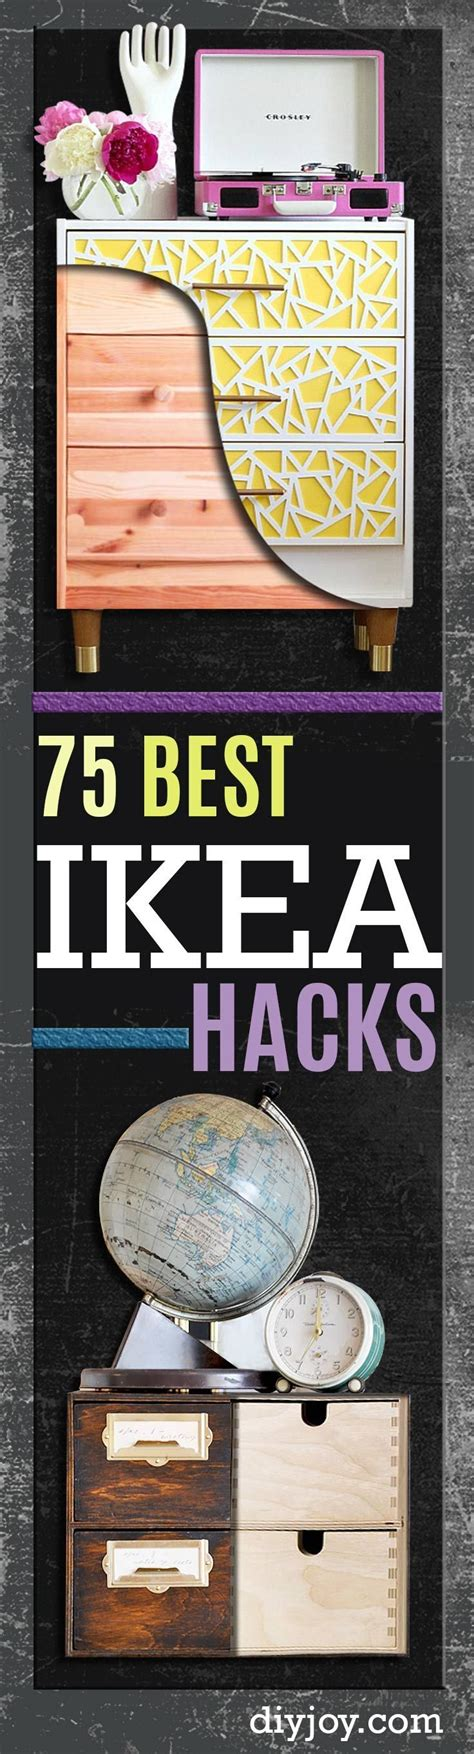 306 best images about ikea hacks diy home on pinterest 259 best images about diy ideas on pinterest crafts